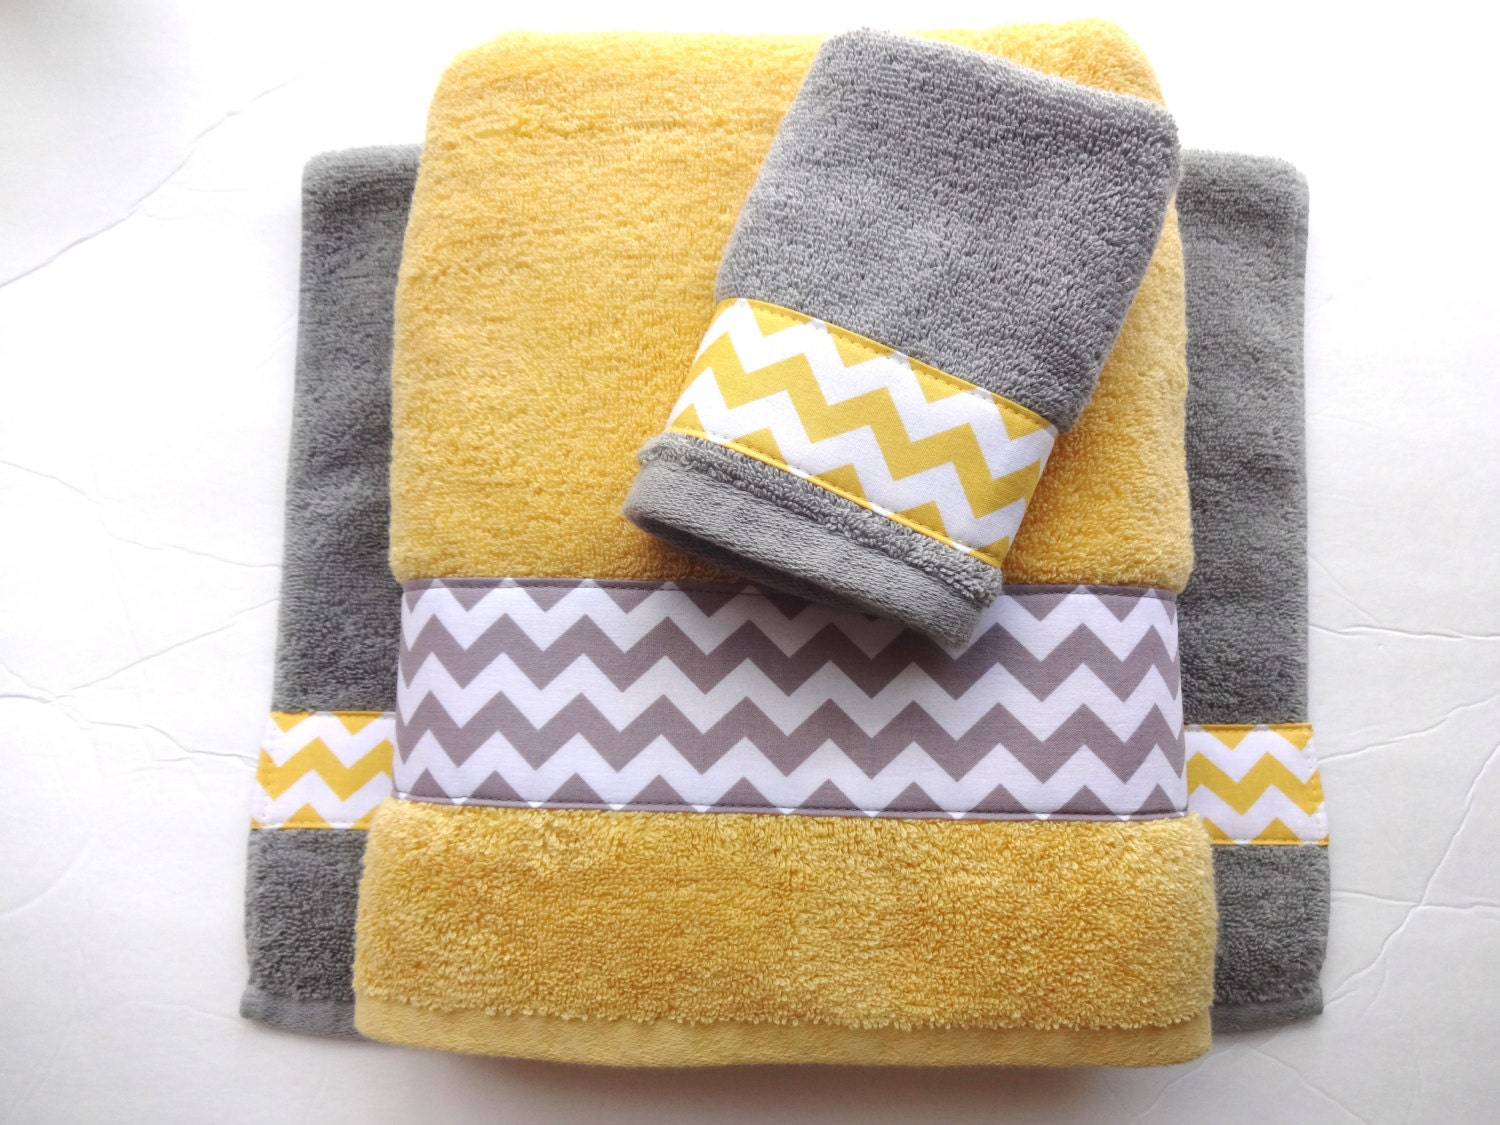 Pick Your Size Towel Yellow And Grey Towels Gray And Yellow Bathroom